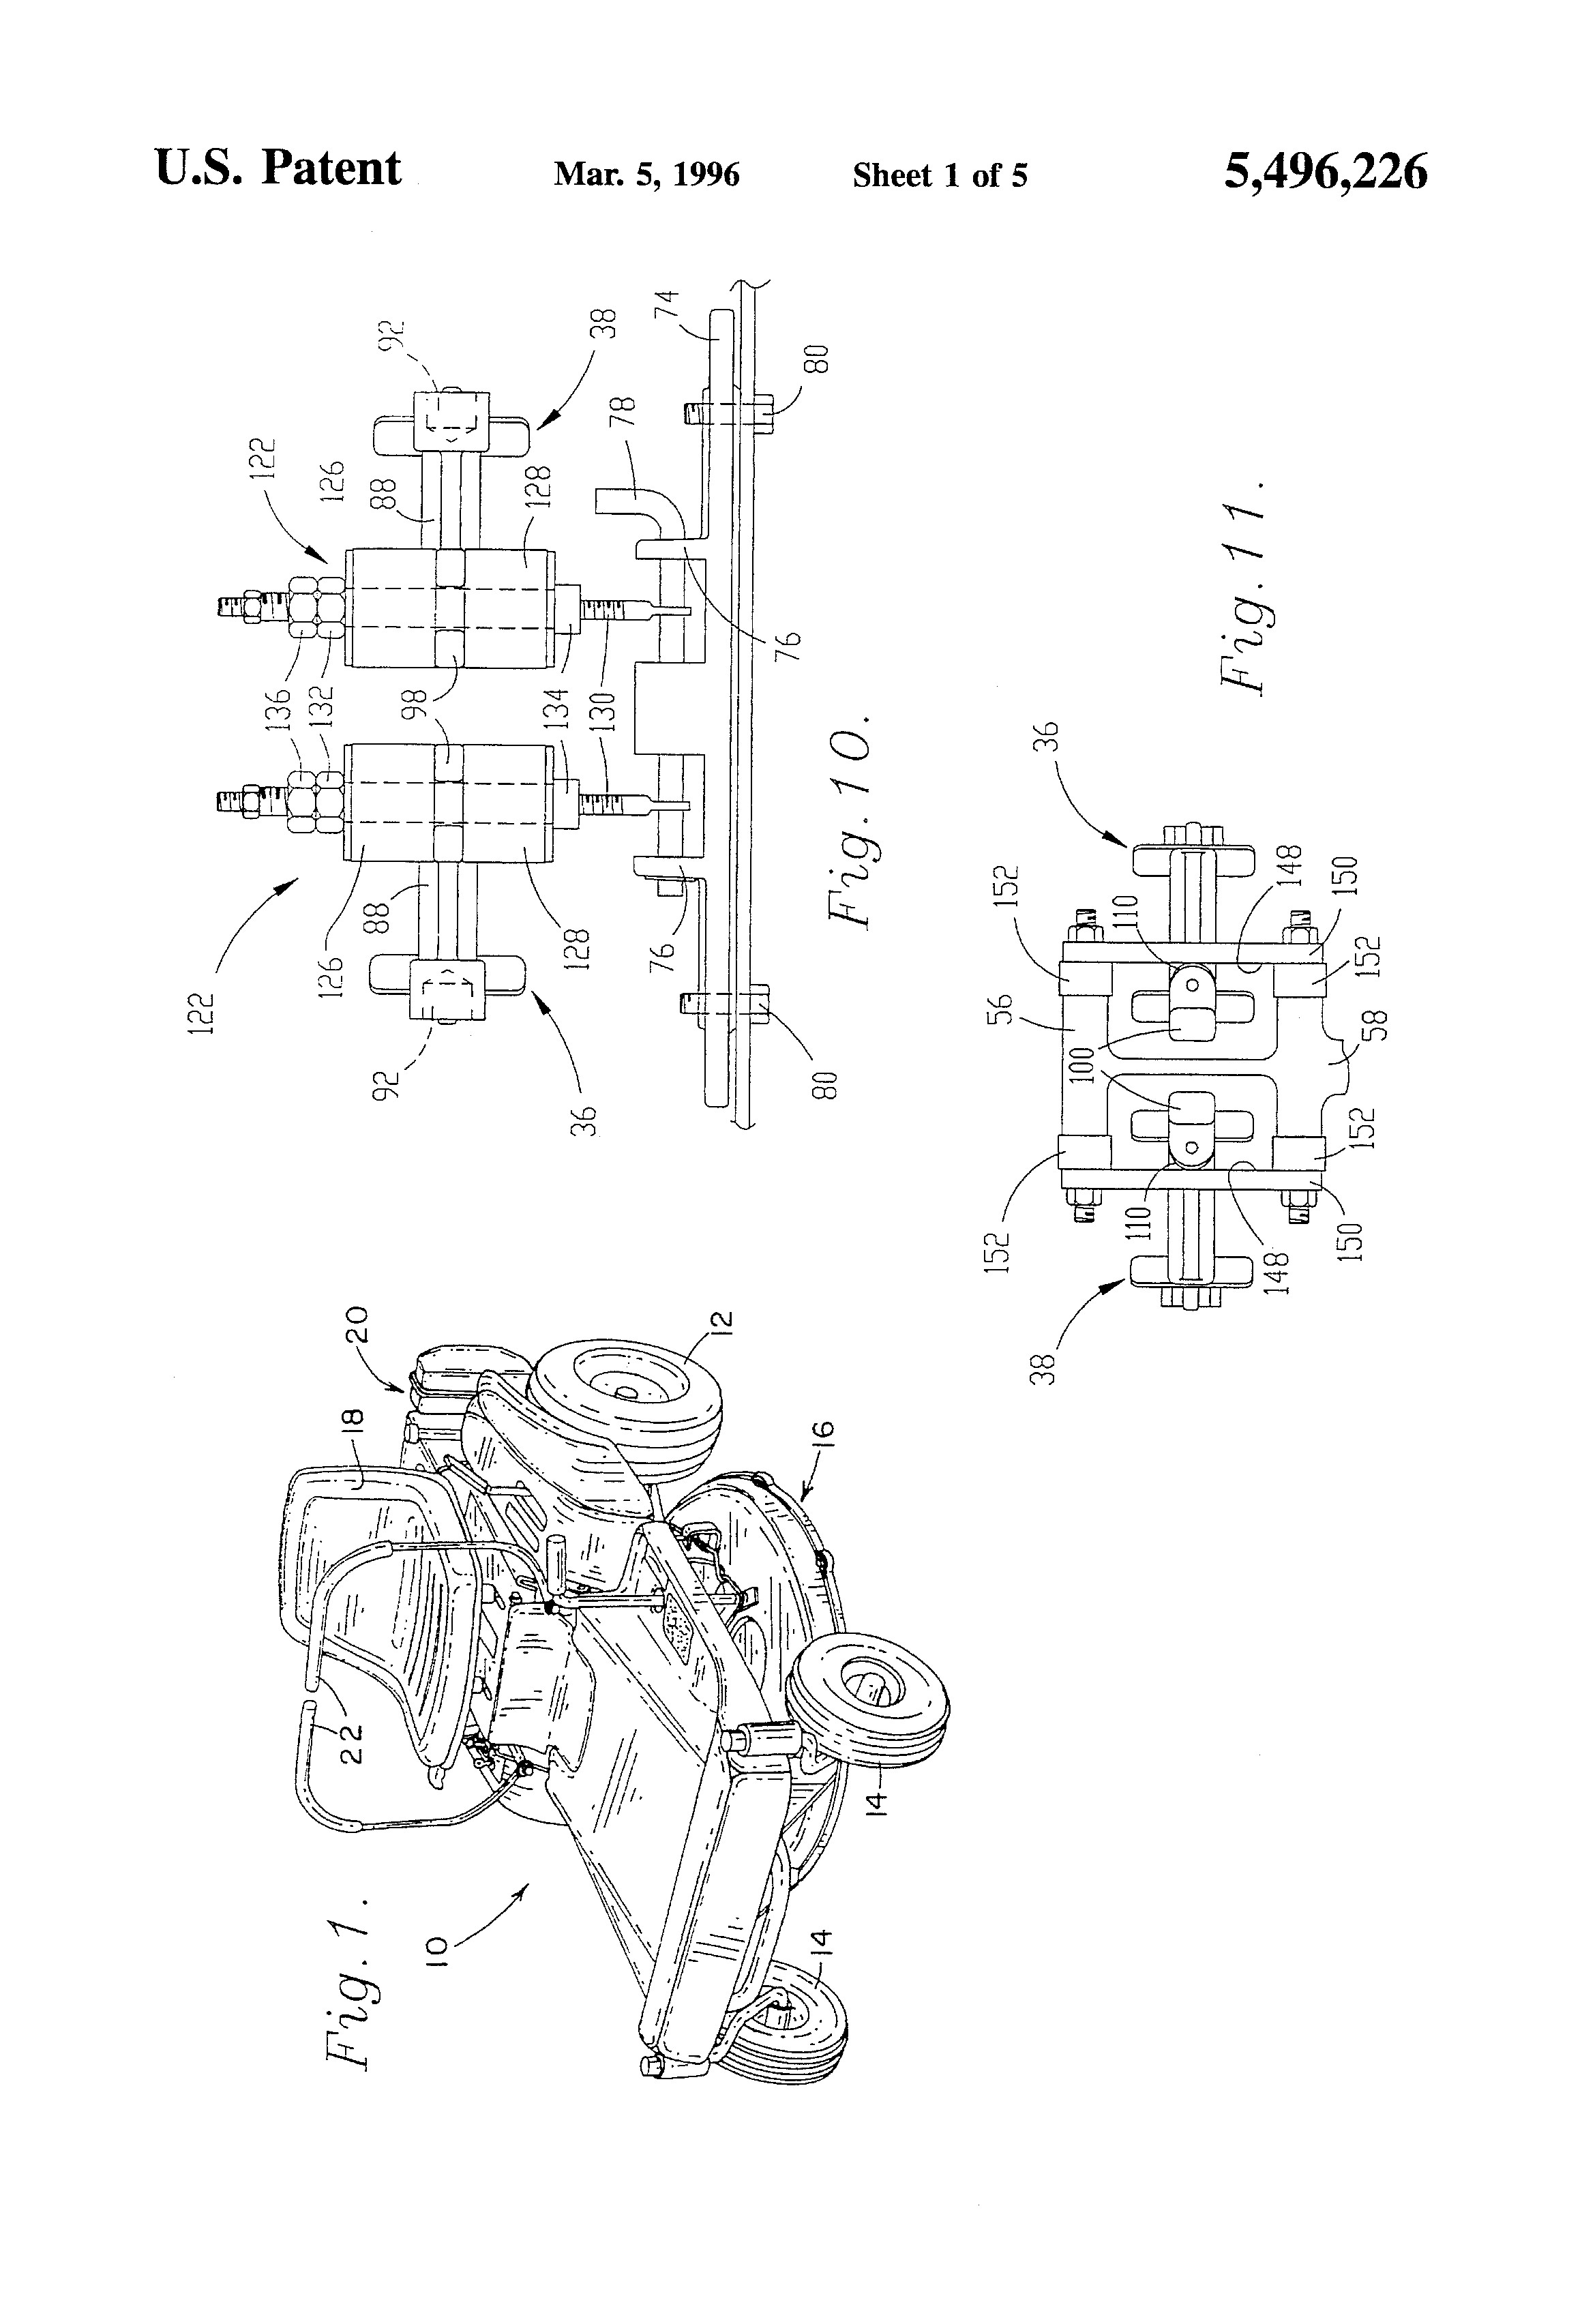 dixon lawn mower parts diagram patent us friction drive unit for riding lawn mowers and  u2013 my